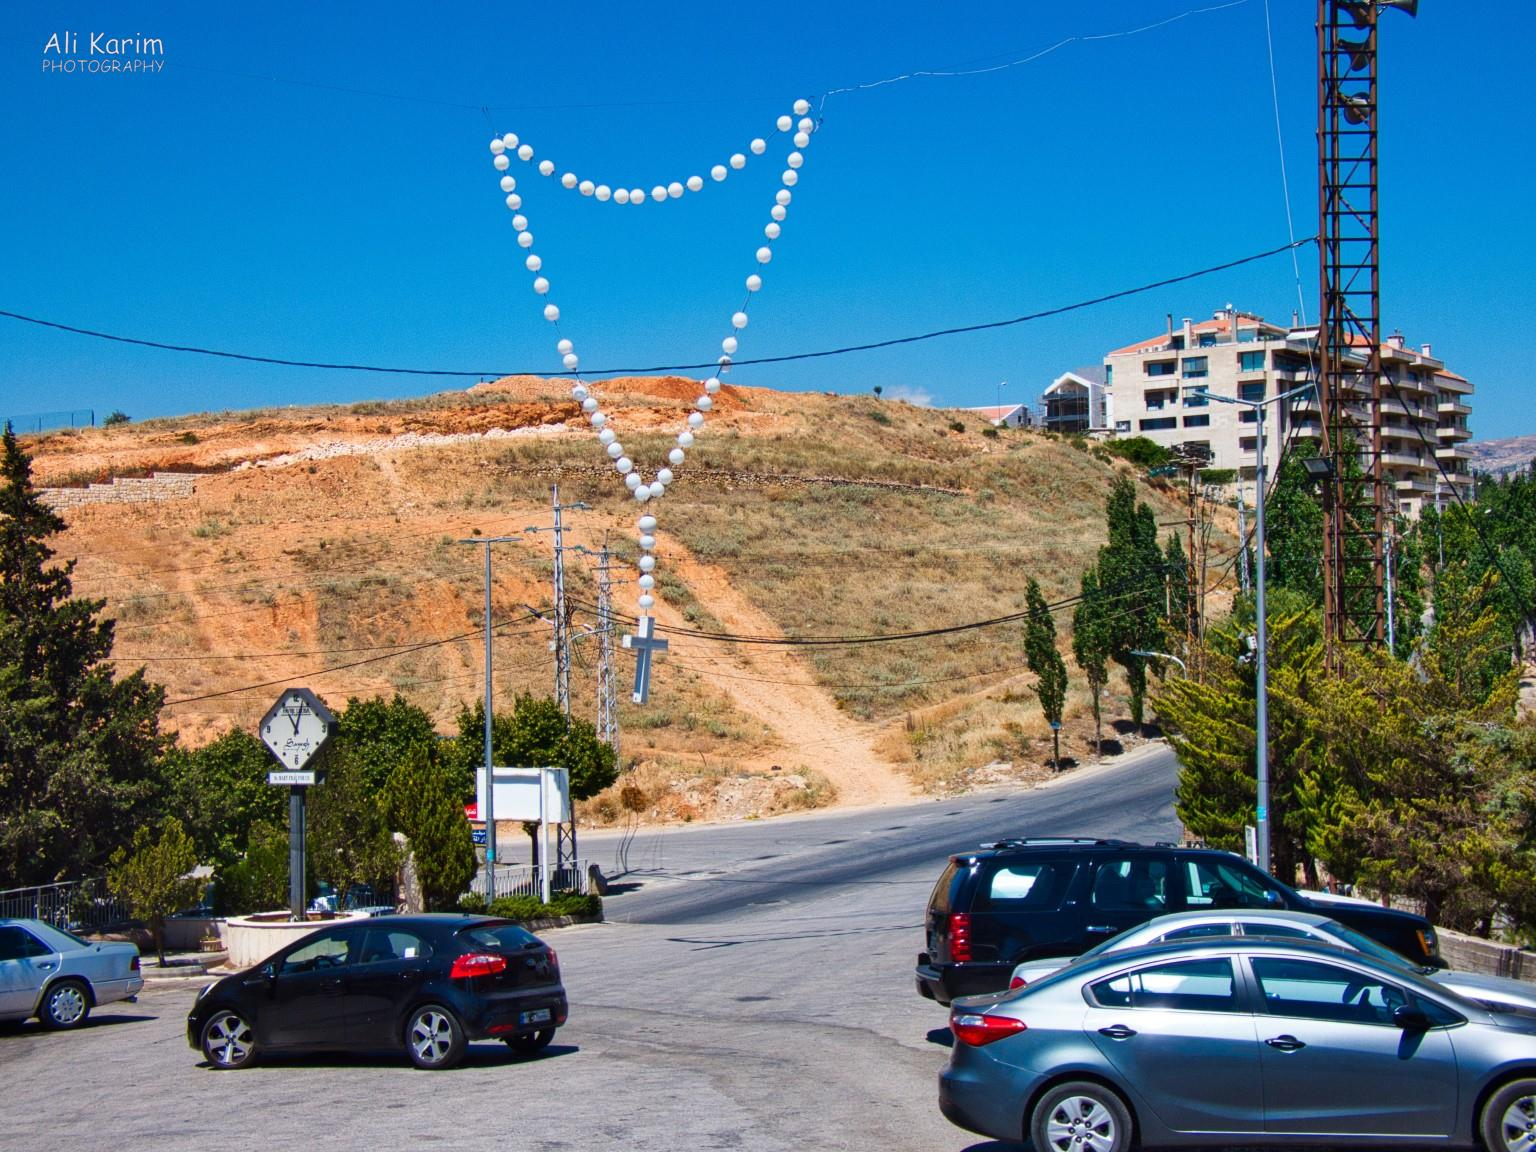 Bekaa Valley Winery, Chouf Mountains & the Druze Rosary at entrance to Our Lady of Zahle church